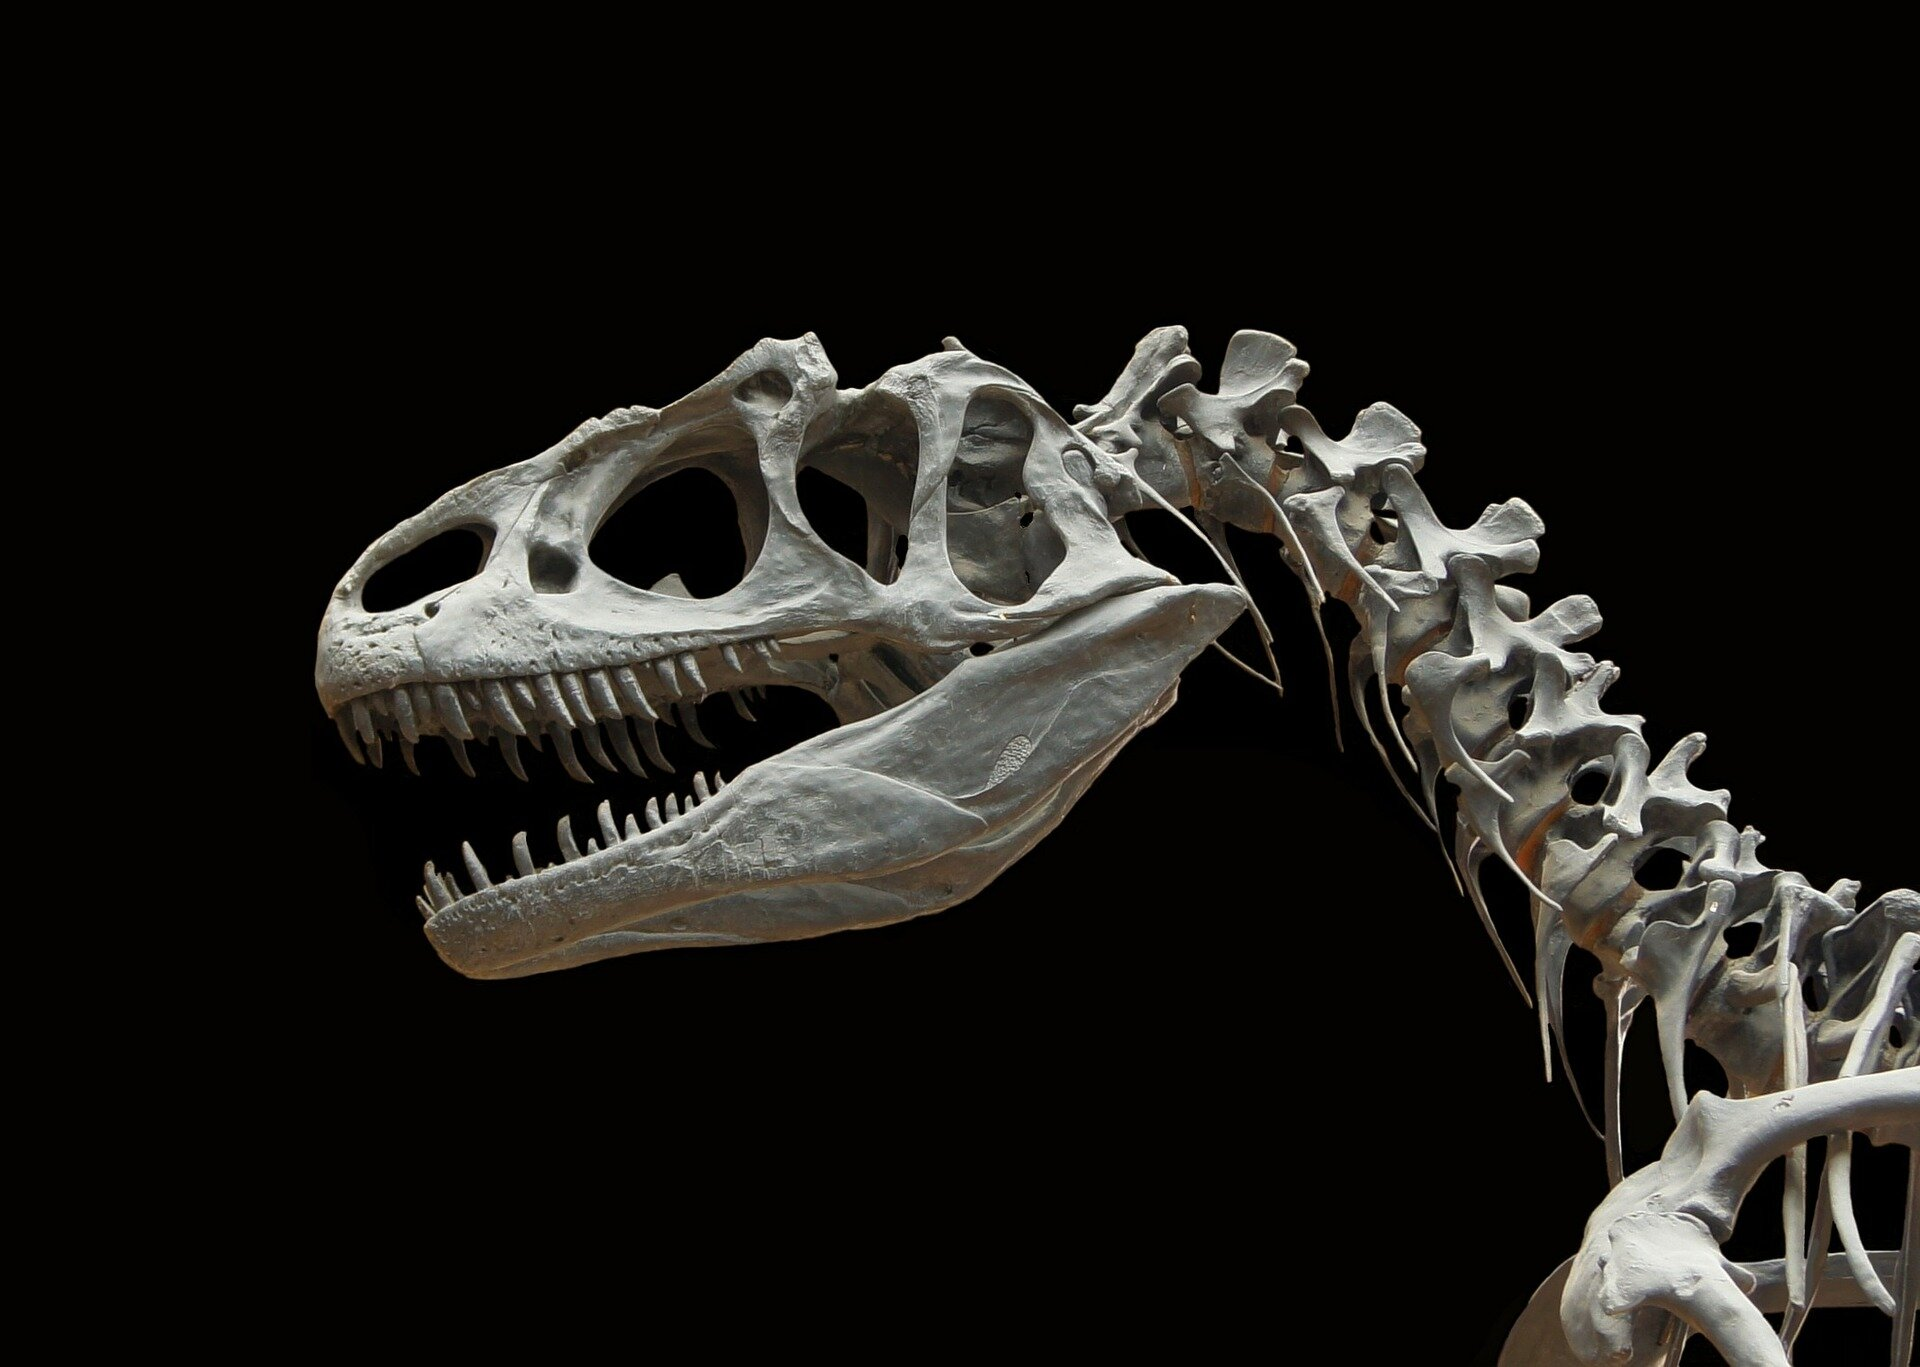 Dinosaur species: 'Everyone's unique'